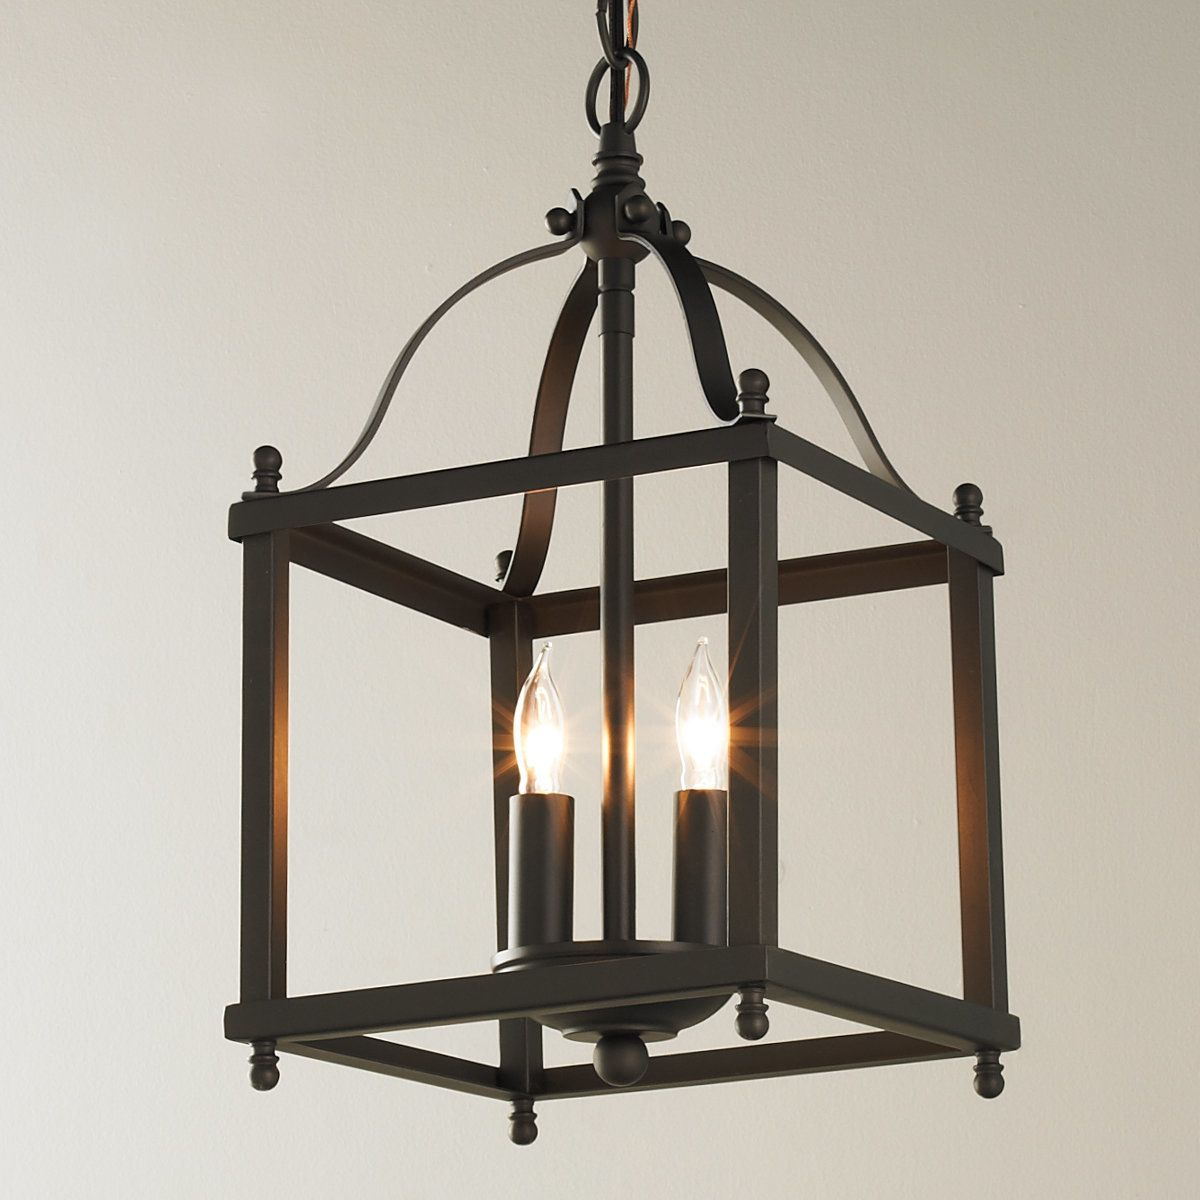 Arched silhouette pendant light bronze lighting pinterest